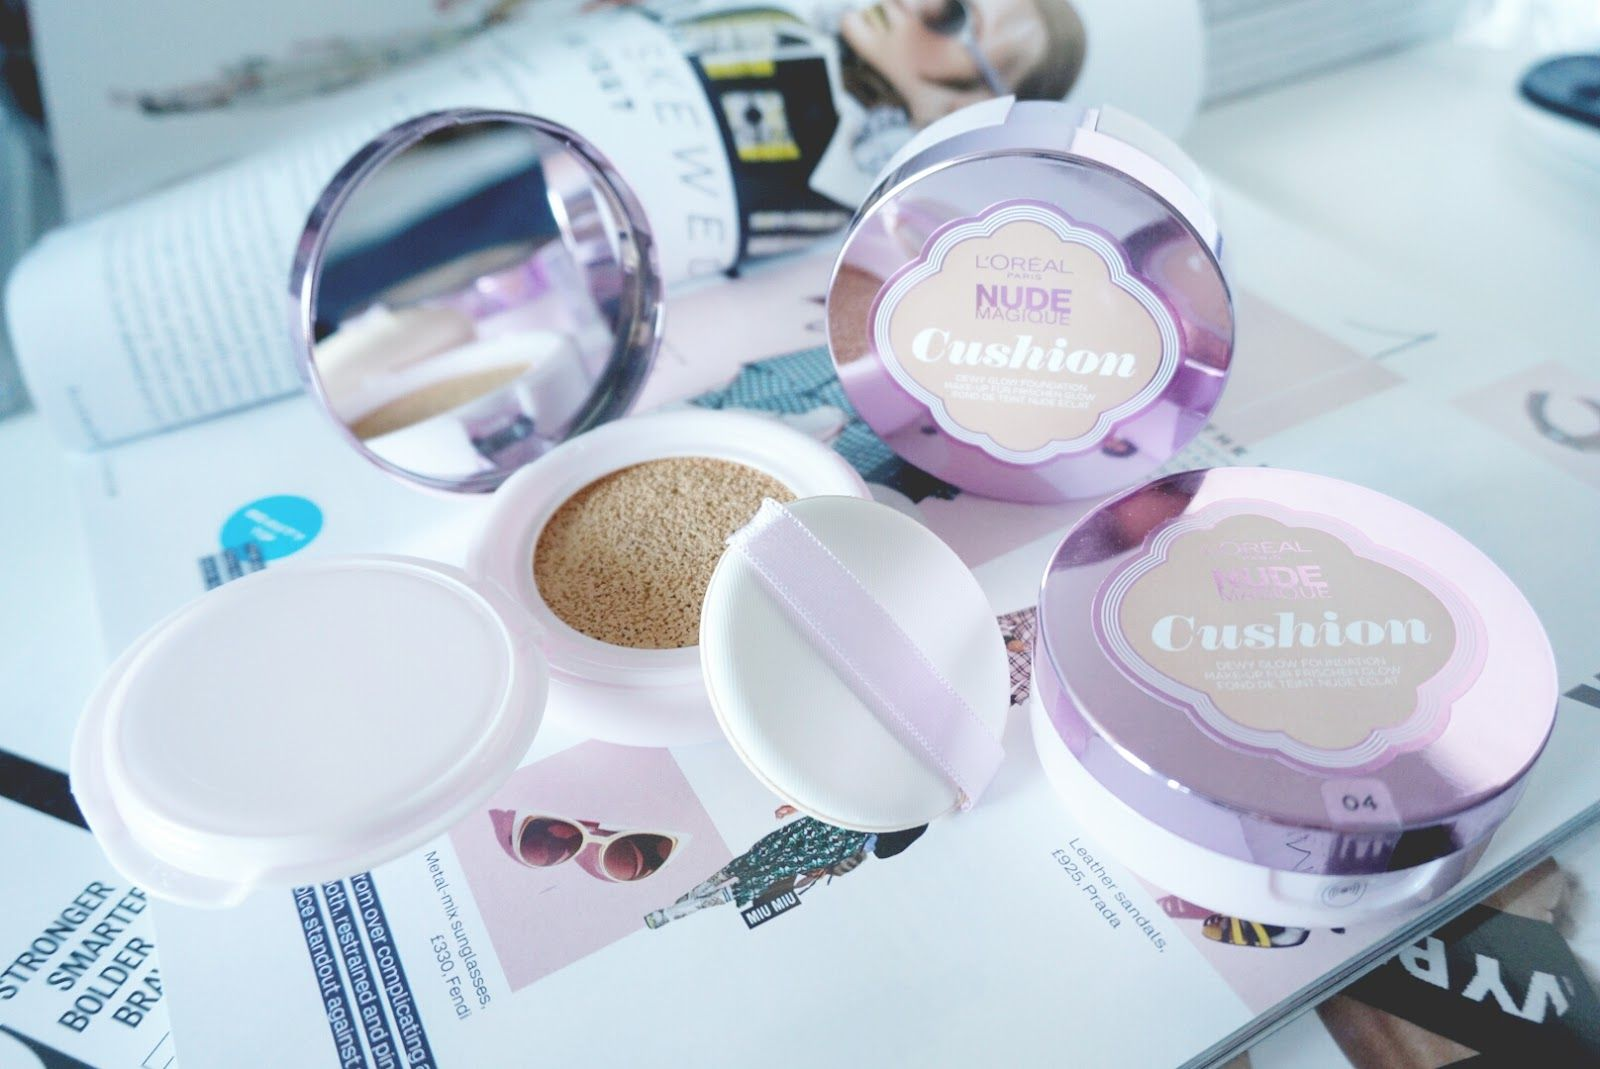 LOreal Nude Magique Cushion Foundation Review & Swatches